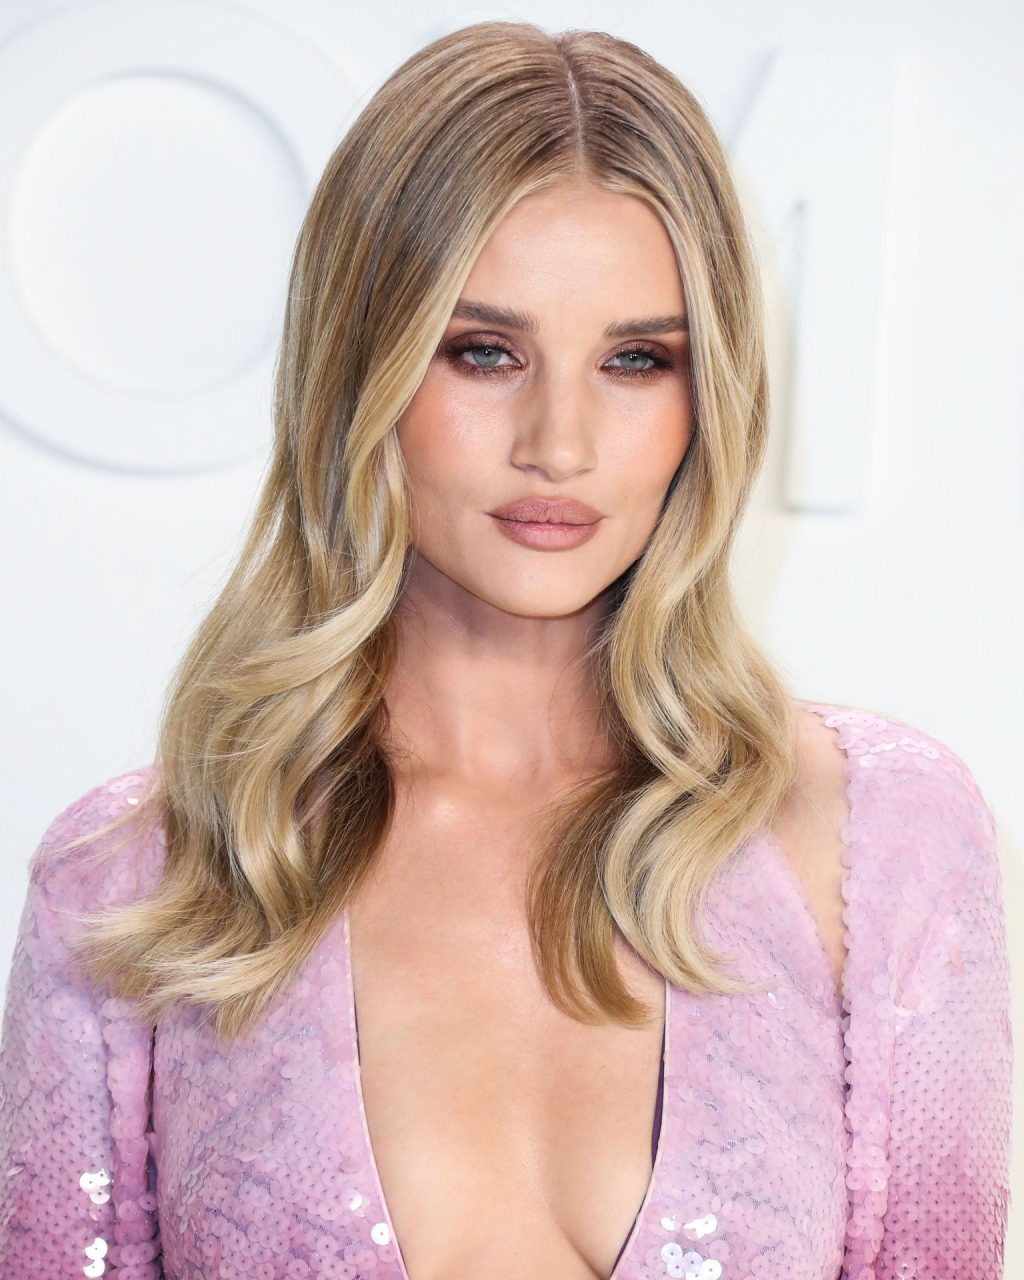 Rosie Huntington Whiteley Sexy The Fappening Blog 90 1024x1280 - Rosie Huntington-Whiteley Shows Her Cleavage at the Tom Ford Fashion Show (115 Photos)